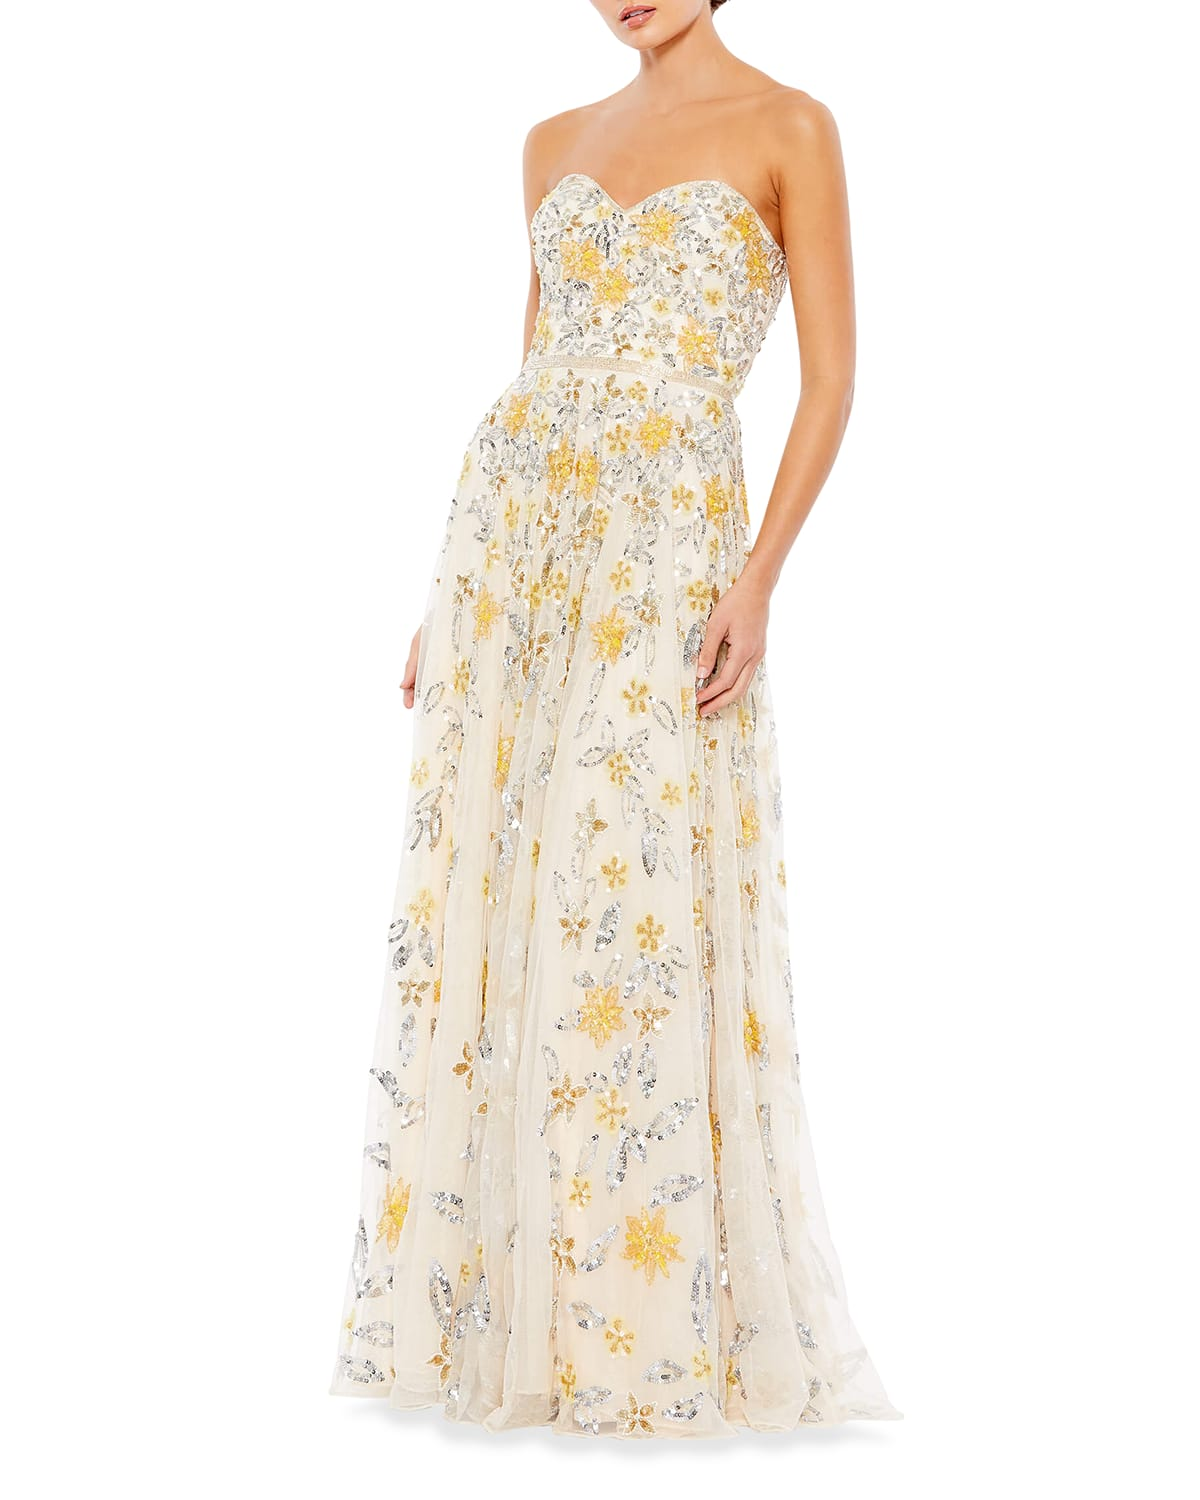 Strapless Floral Beaded A-Line Gown